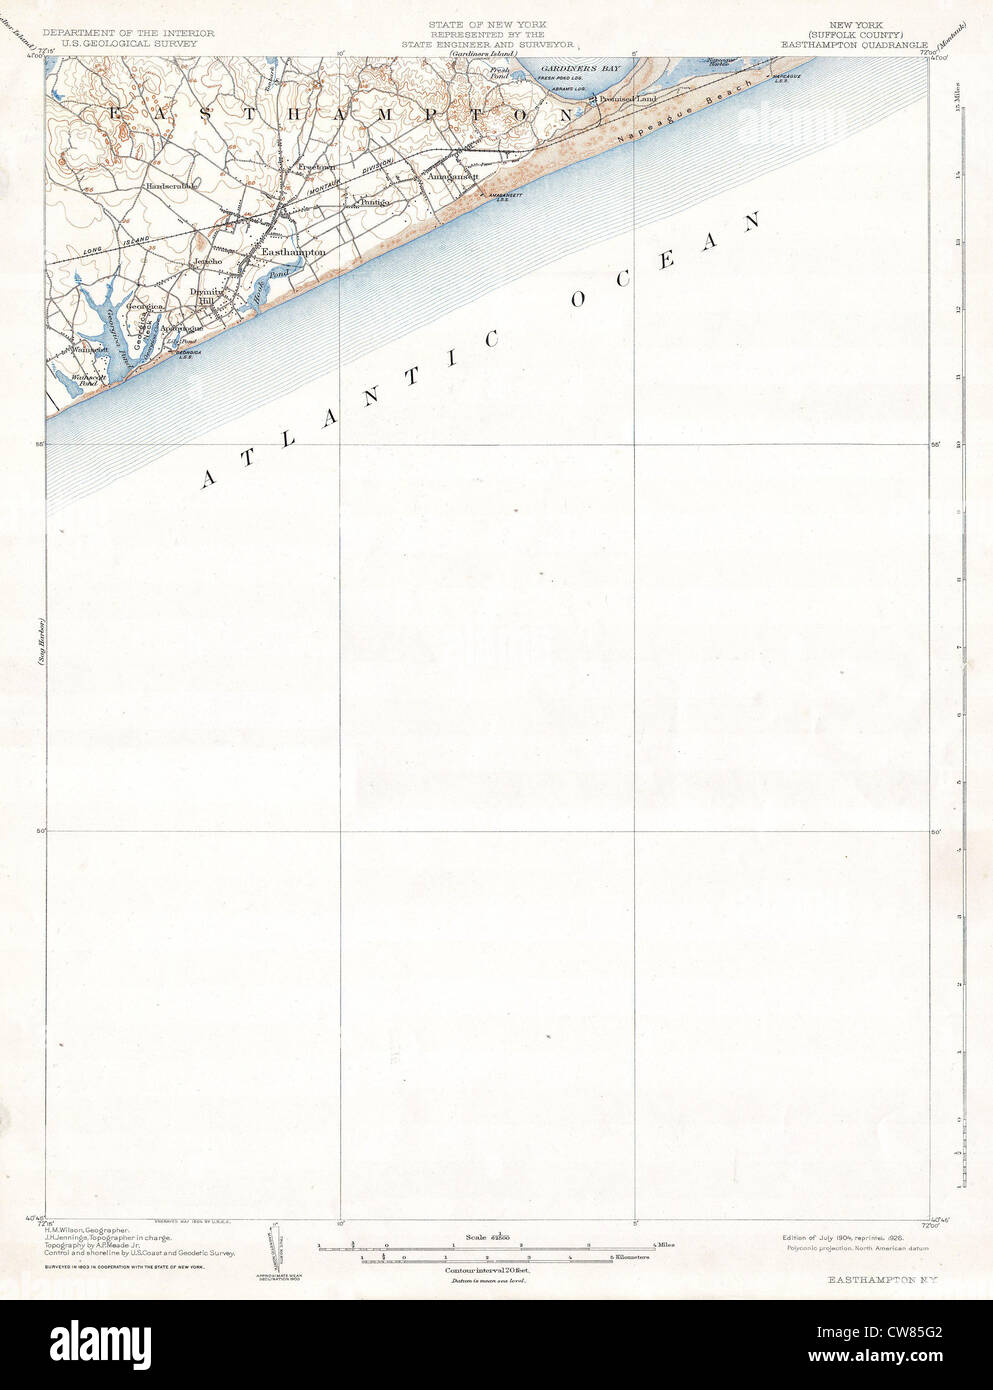 1904 U.S.G.S. Map of Easthampton, Long Island, New York - Stock Image